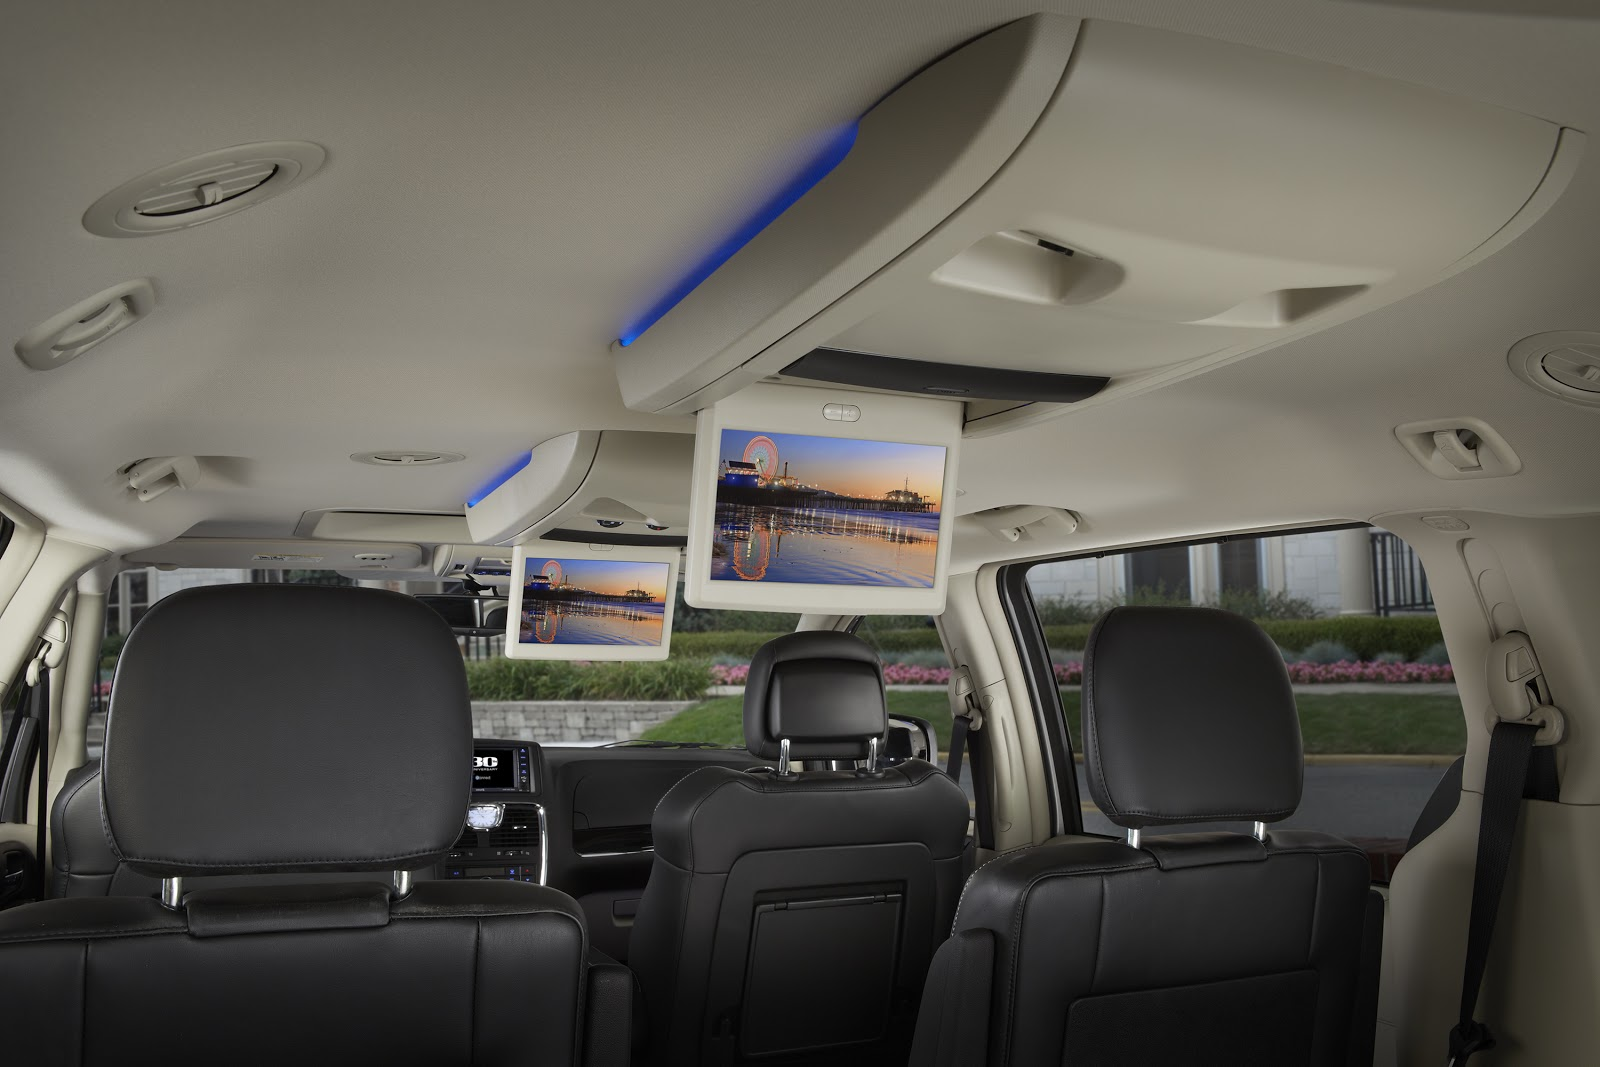 Chryslet Town and Country interior